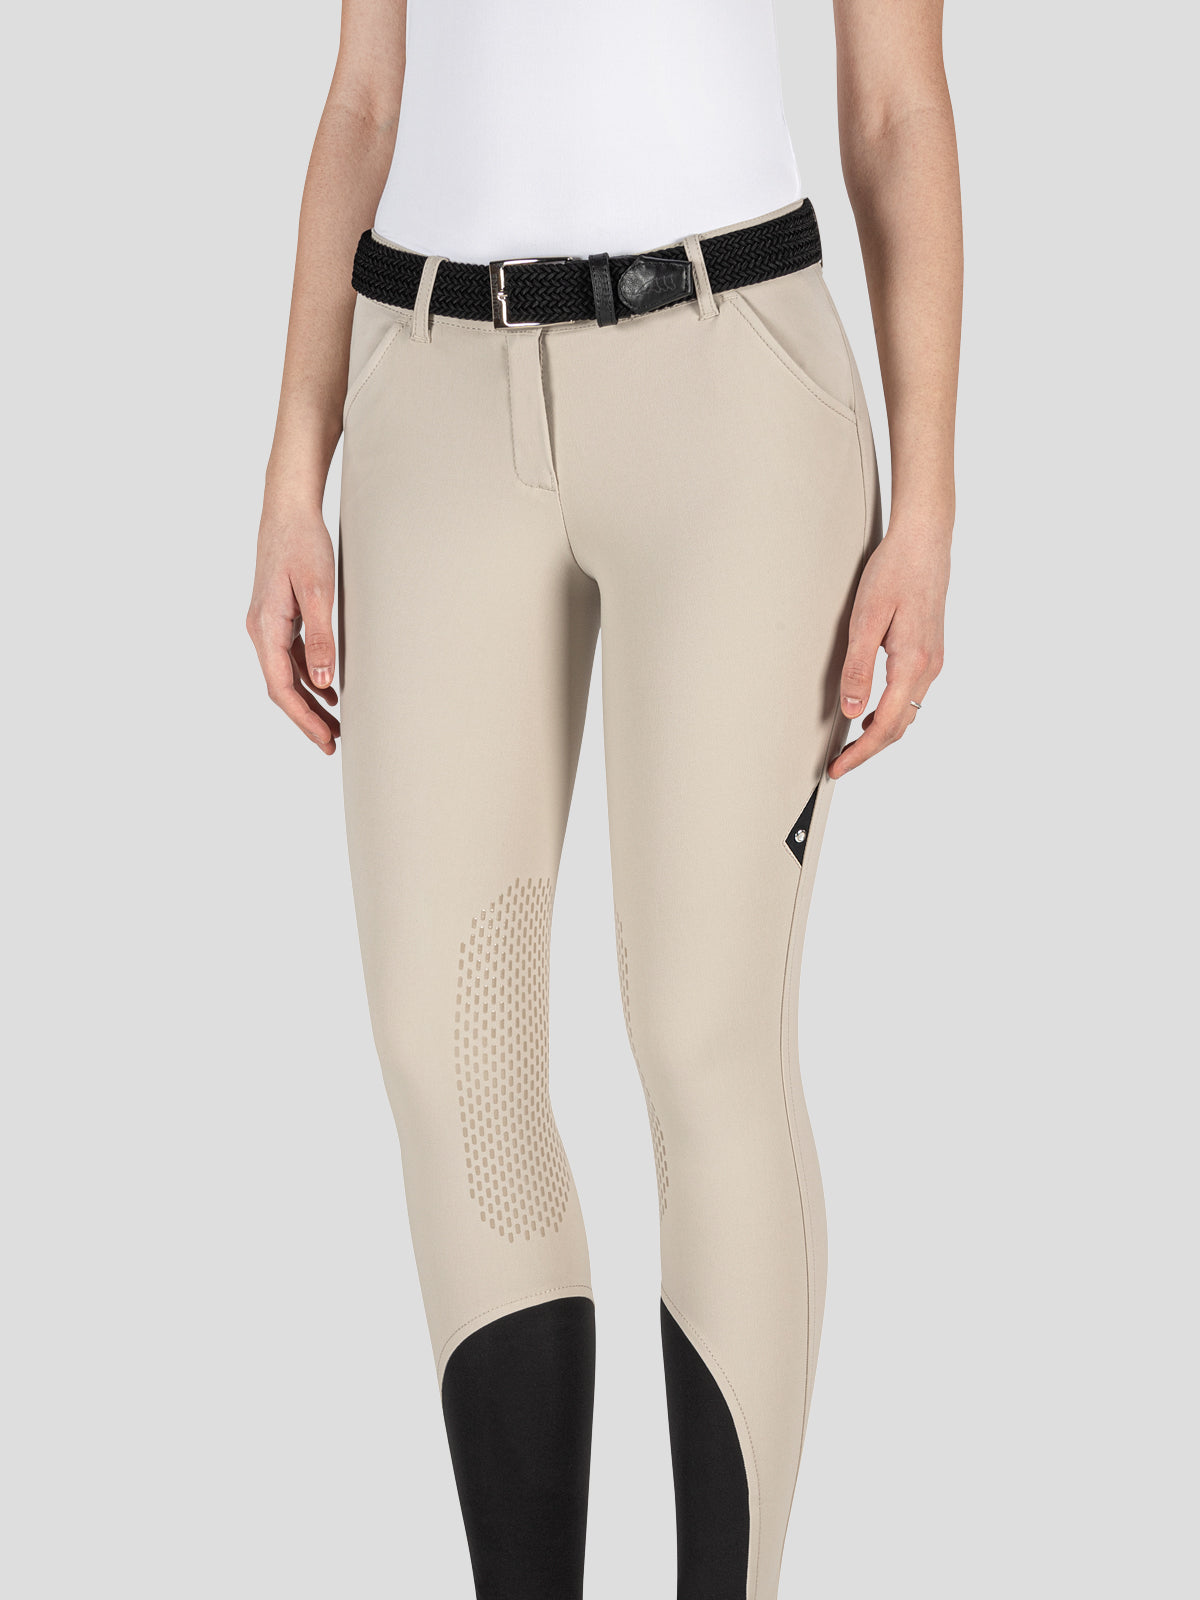 EQUILINE- BRENDAK WOMEN'S KNEE GRIP BREECHES IN B-MOVE